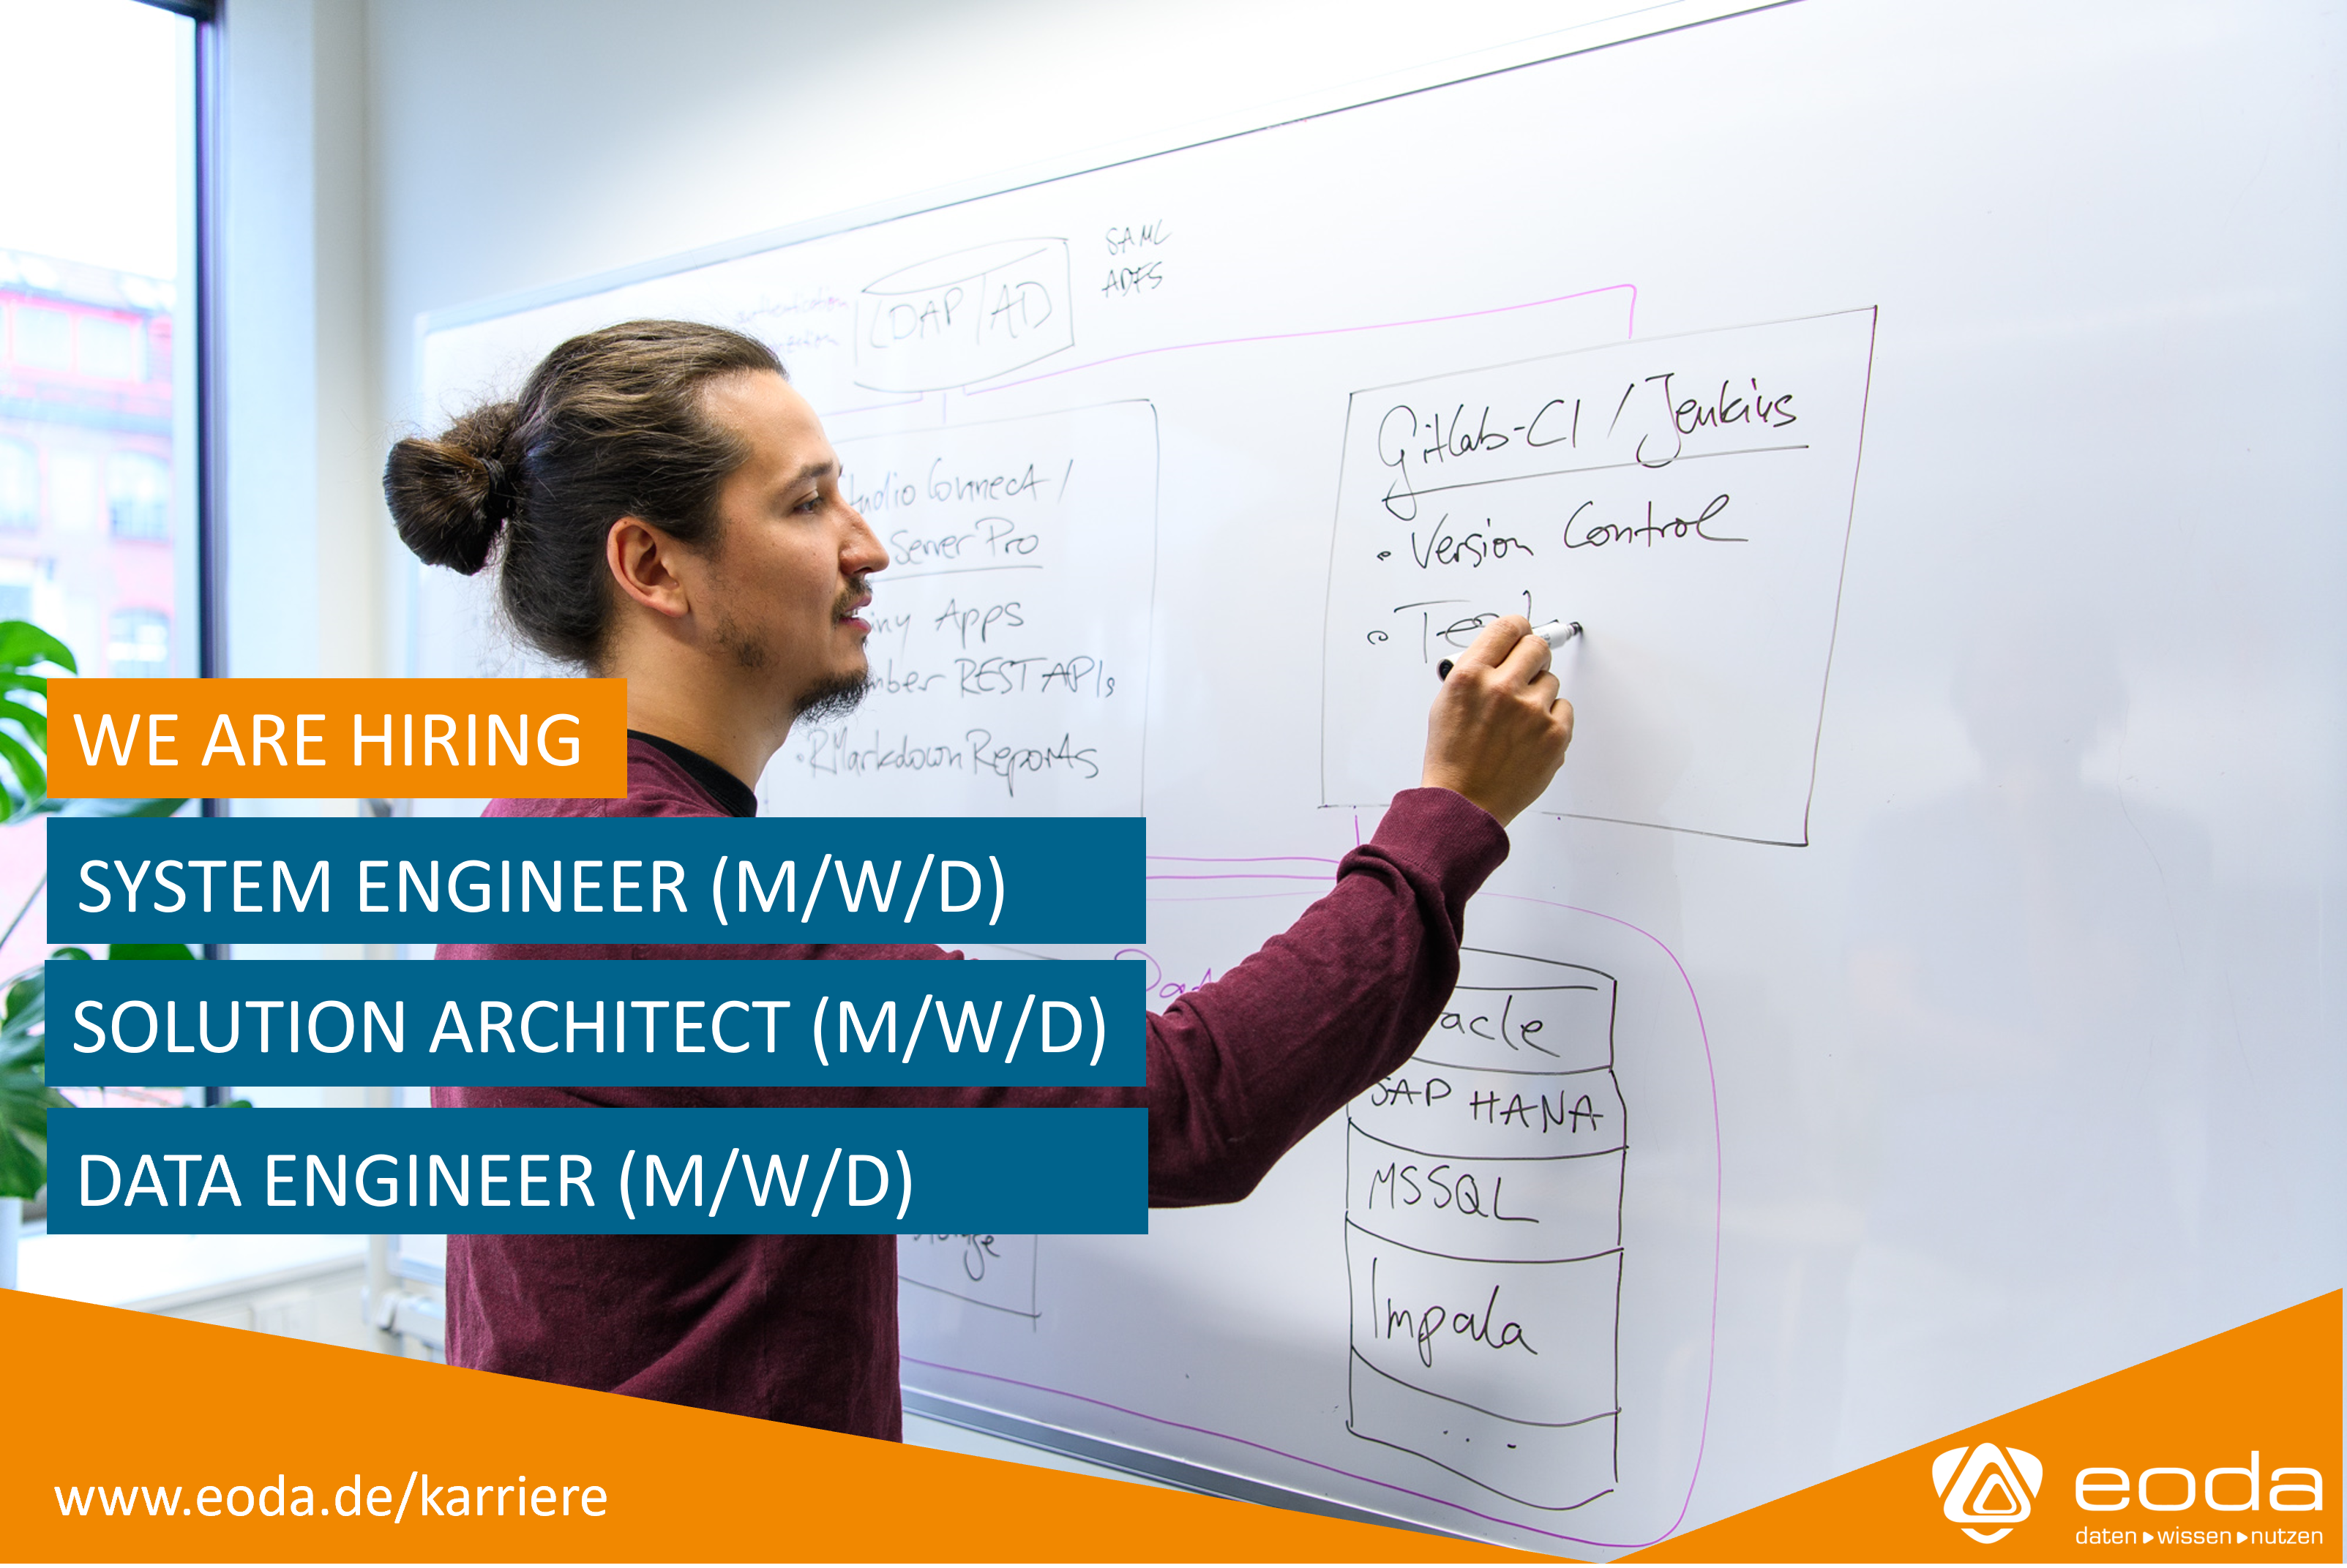 System Engineer, Solution Architect or Data Engineer from Germany? – eoda is hiring!